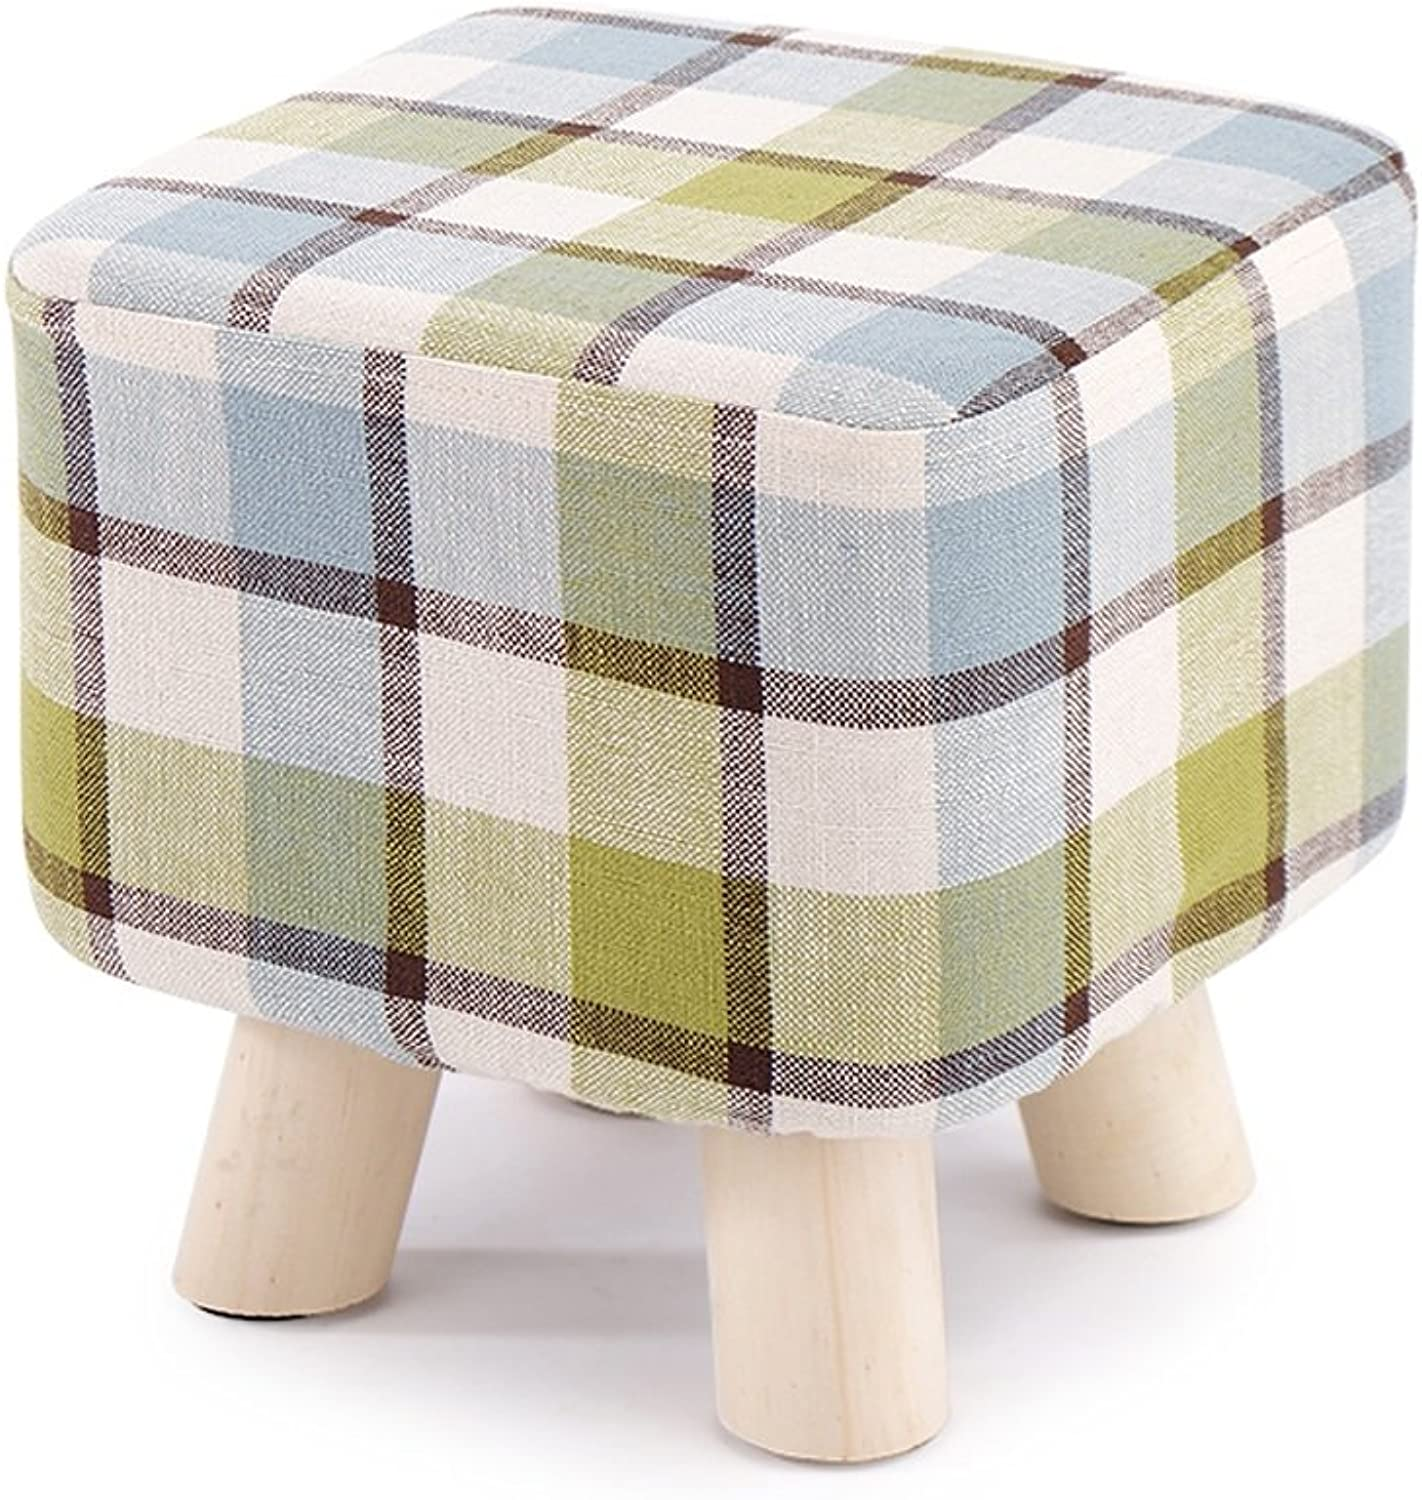 shoes Bench, Sofa Bench, Solid Wood Stool, Long Bed End Stool, Footstool,28×28×28.5cm (color   D)